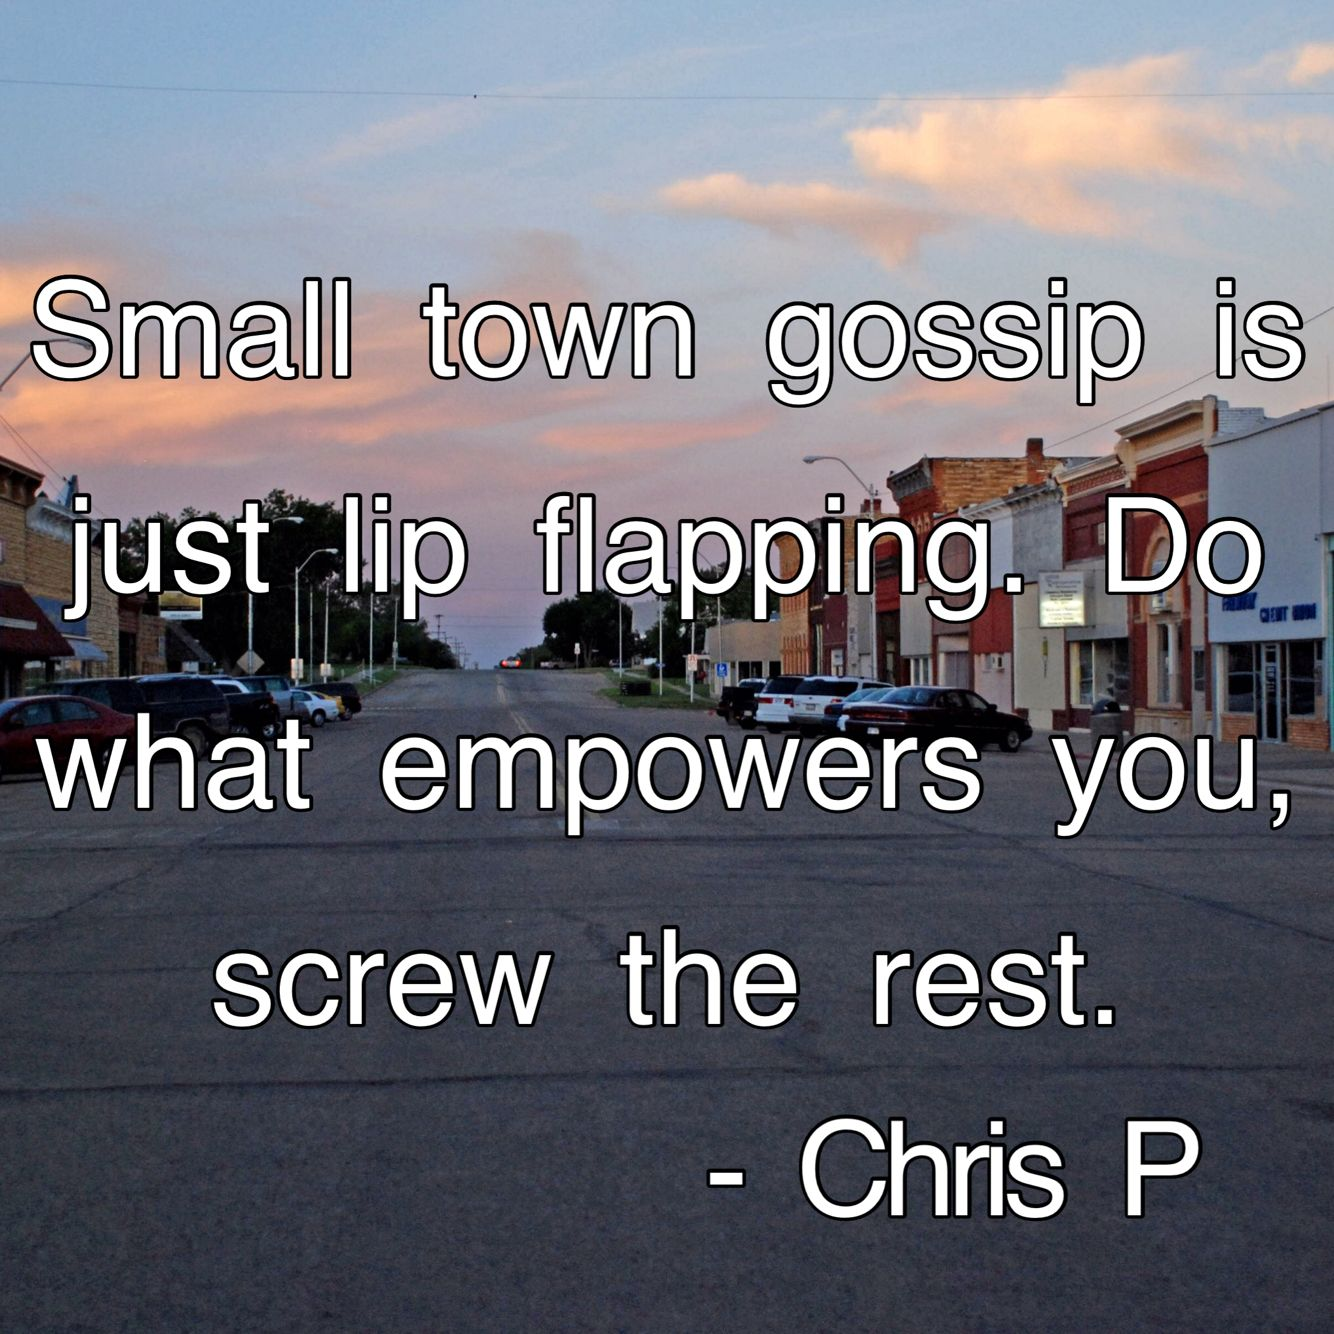 Small Town Gossip Quotes Quote From An Old Friend Of Mine Smart Guy Meme Worthy Friends Quotes Friendship Quotes Good Relationship Quotes